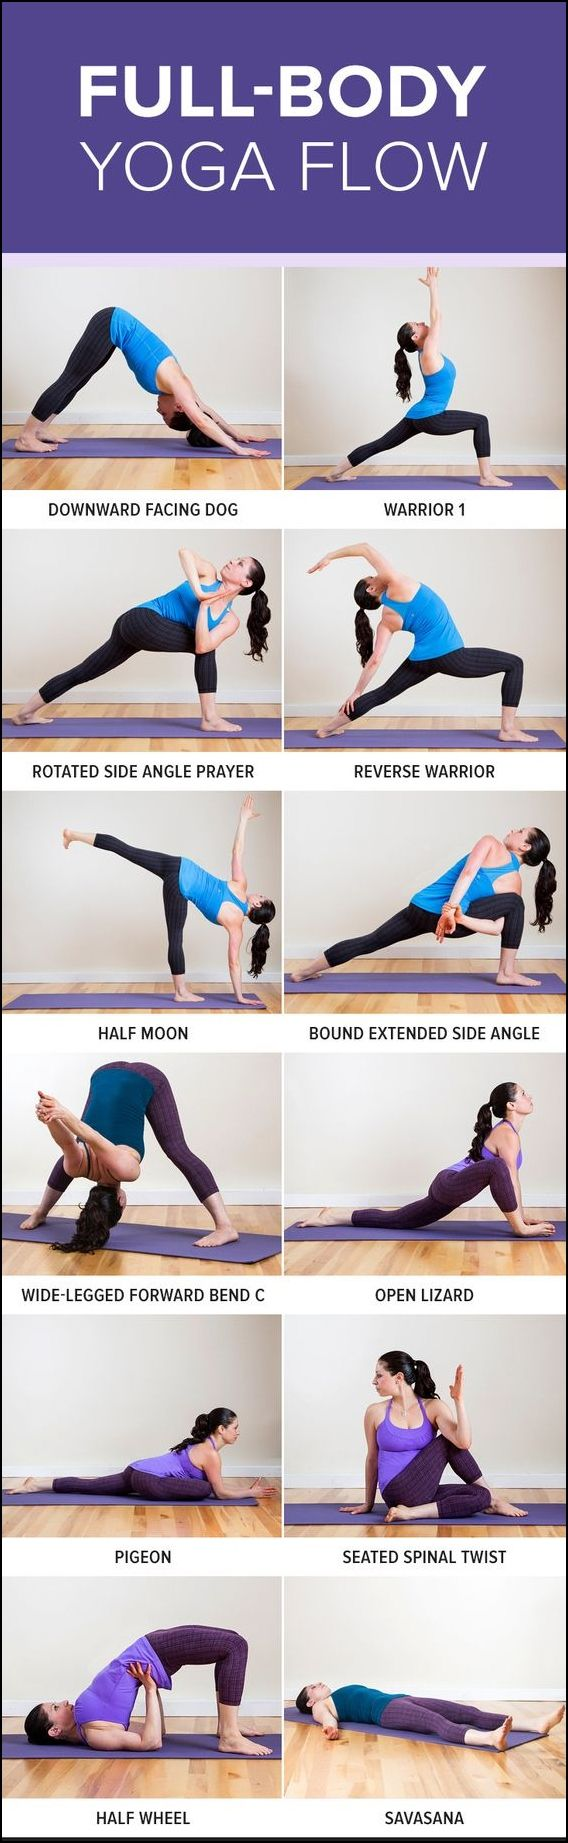 This yoga flow works your muscles while lengthening them to help you get long and lean.    https://youtu.be/SmX0Dc4HtIY #weightloss #loseweight #howtoloseweight #workout #athomeworkout #weightlossexcercises #slimmingtips #health